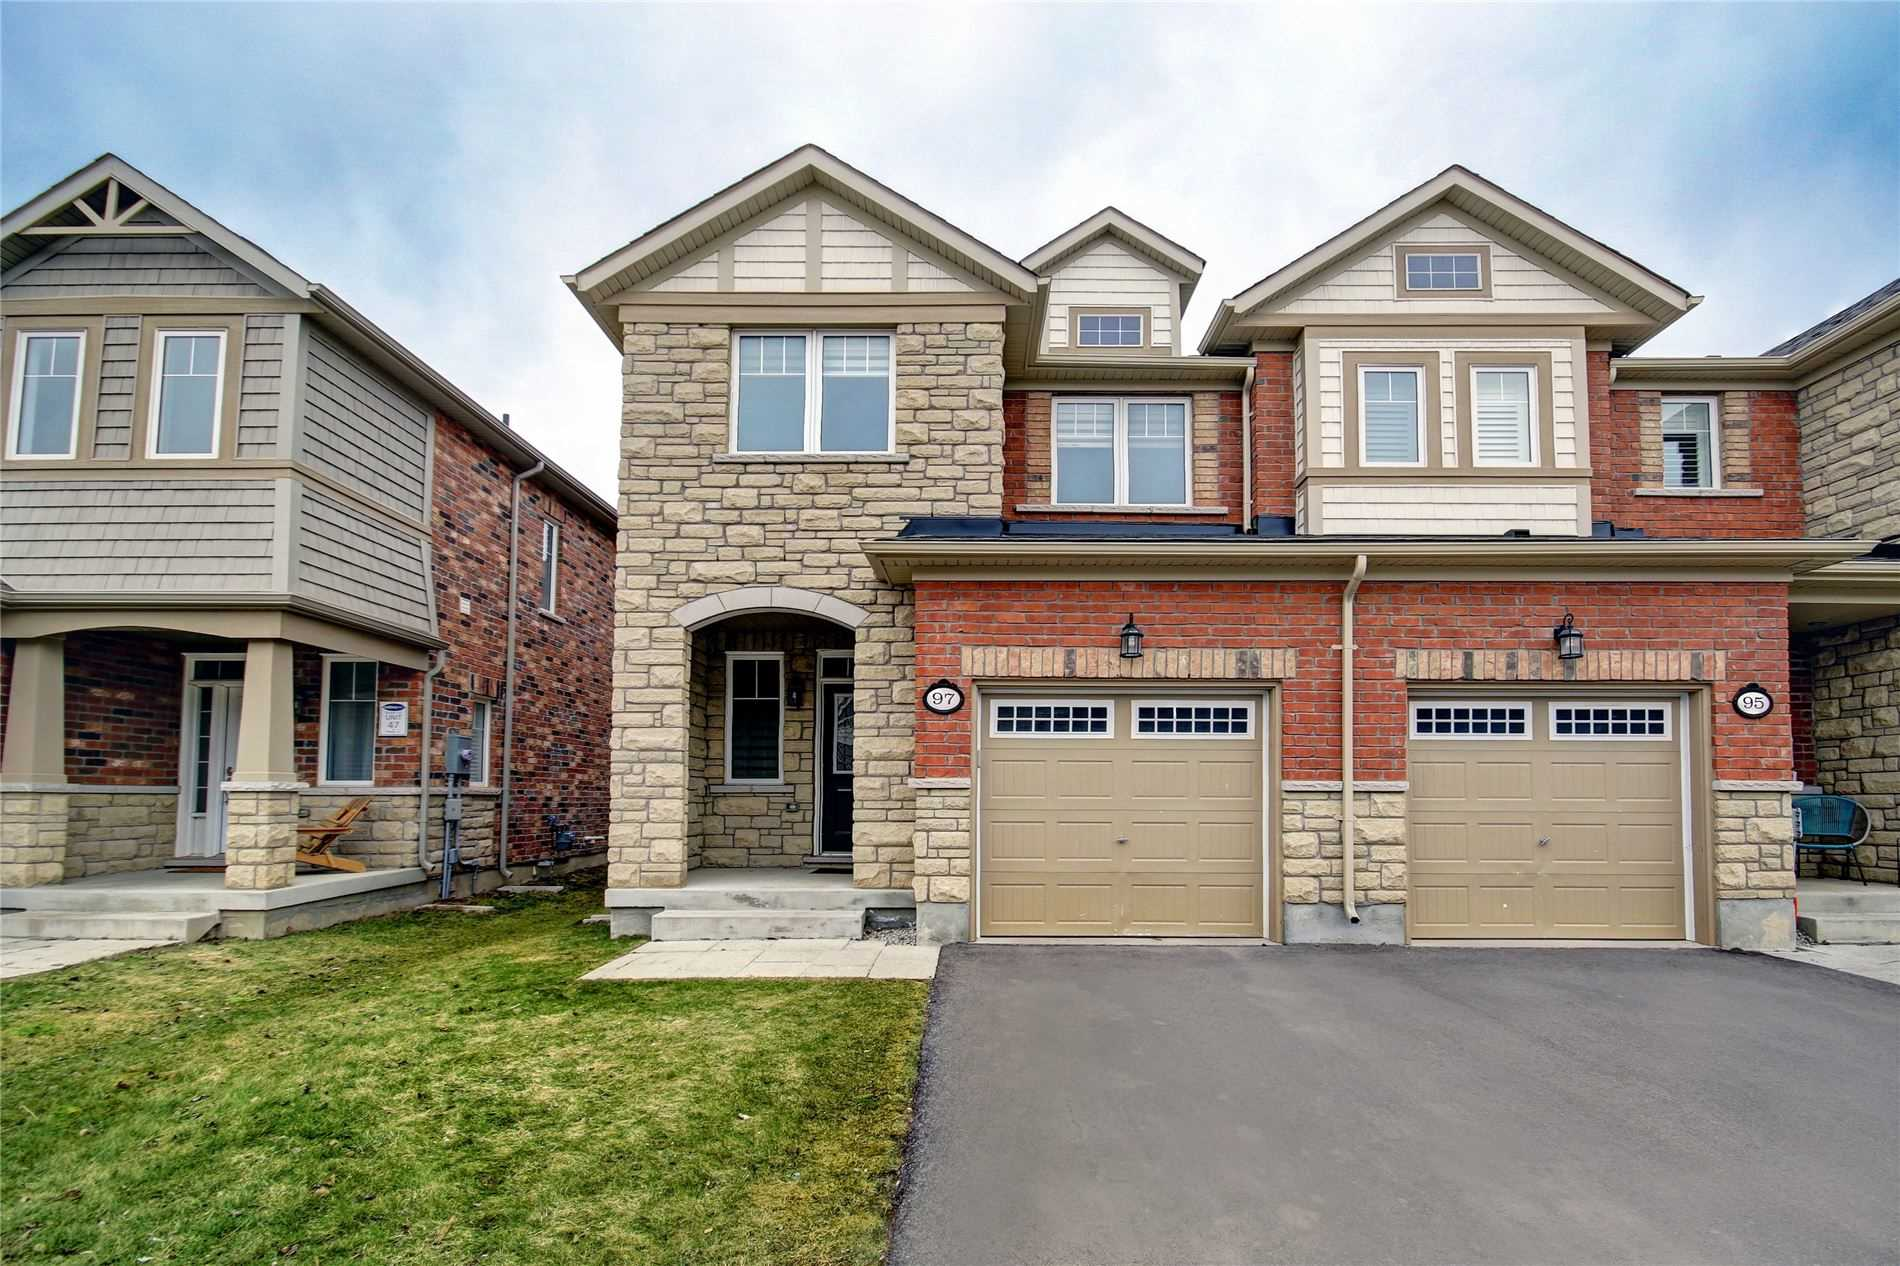 pictures of house for sale MLS: W4731694 located at 97 Abigail Cres, Caledon L7C4C7